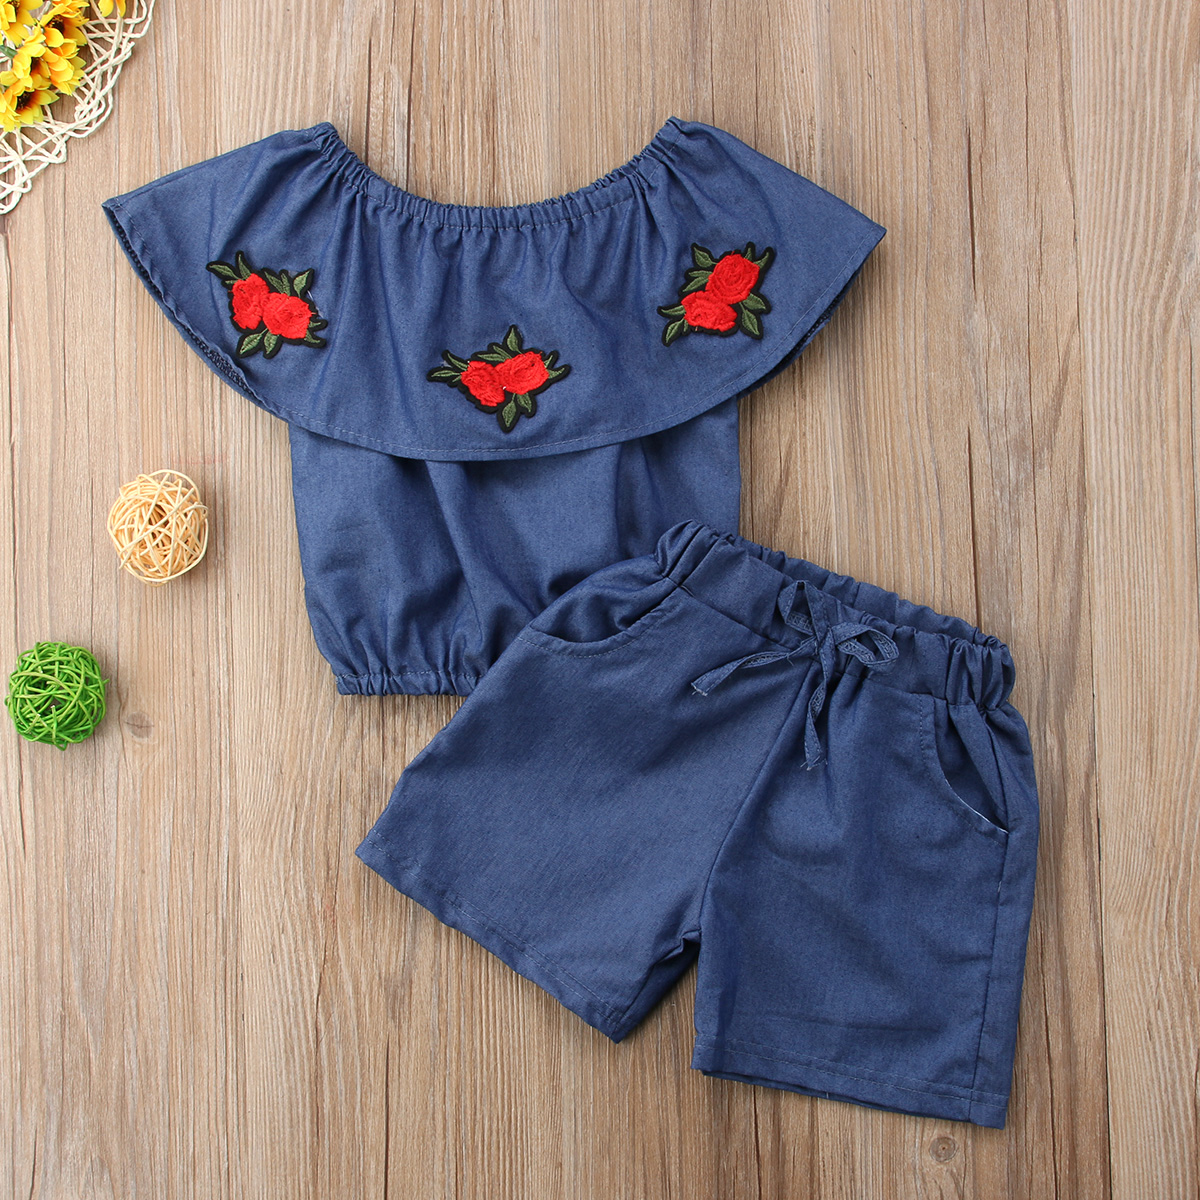 Kids Baby Girls Denim Off Shoulder Sleeveless Tops Embroidery Floral T shirt Short Pants Outfit Sunsuit Summer Set 2019 in Clothing Sets from Mother Kids